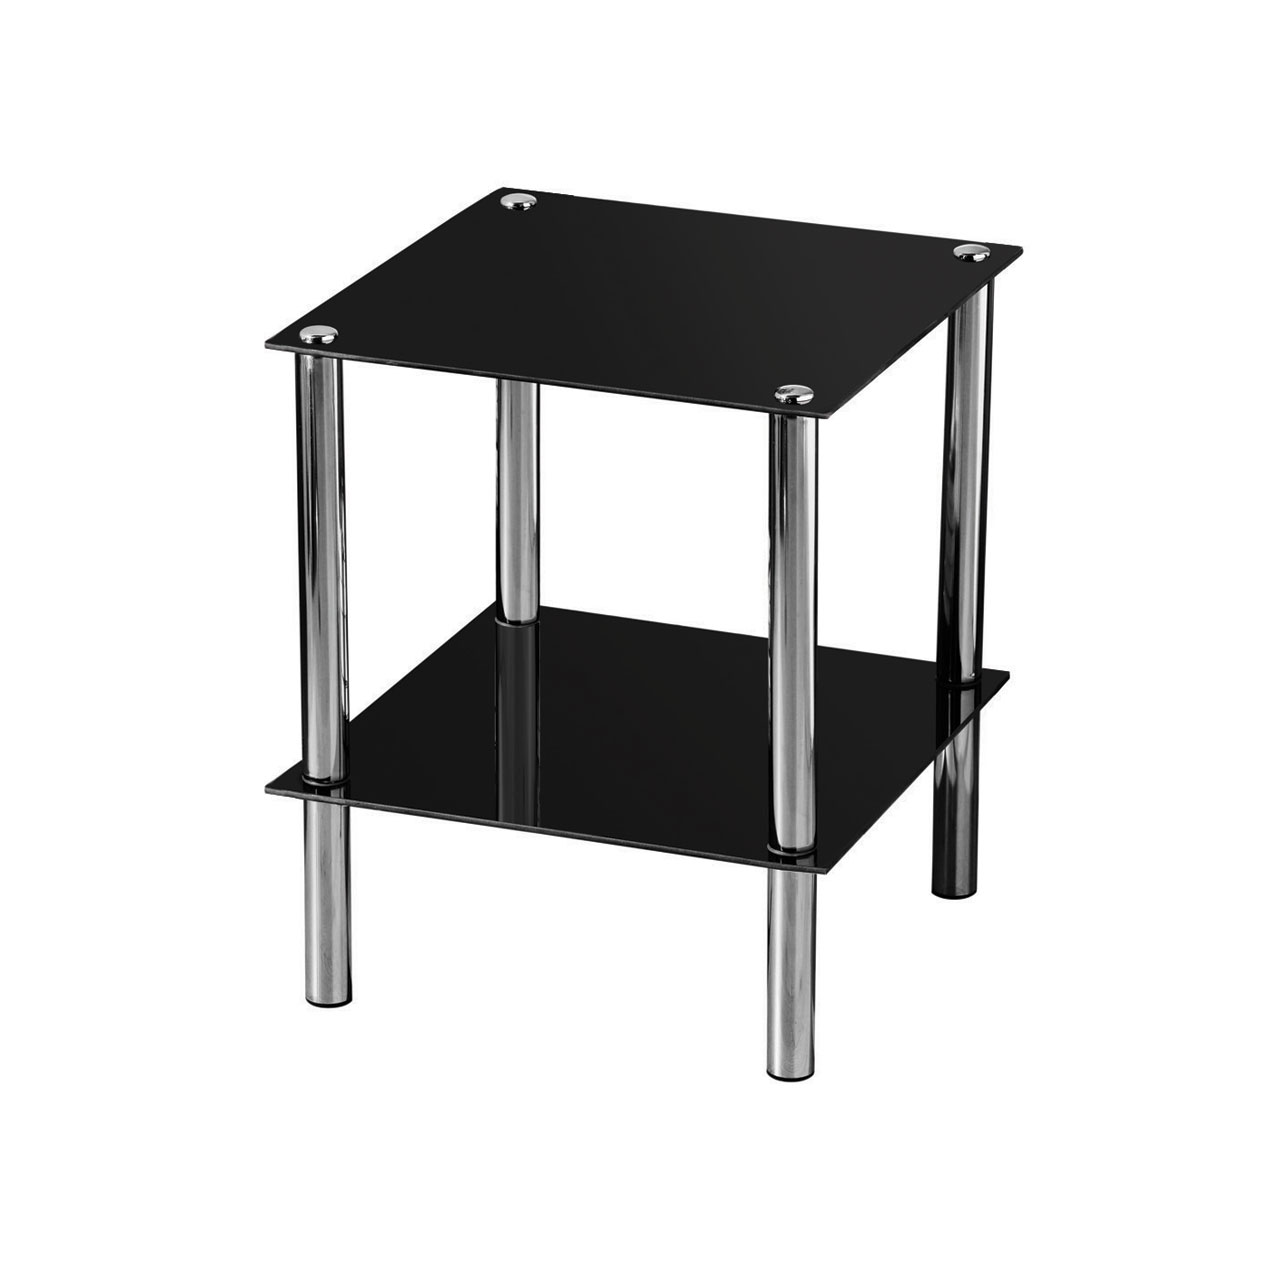 small black accent table metal lamp tables end square glass nautical lights desk tile floor threshold cool home decor chrome furniture legs ashley leather sofa wine storage